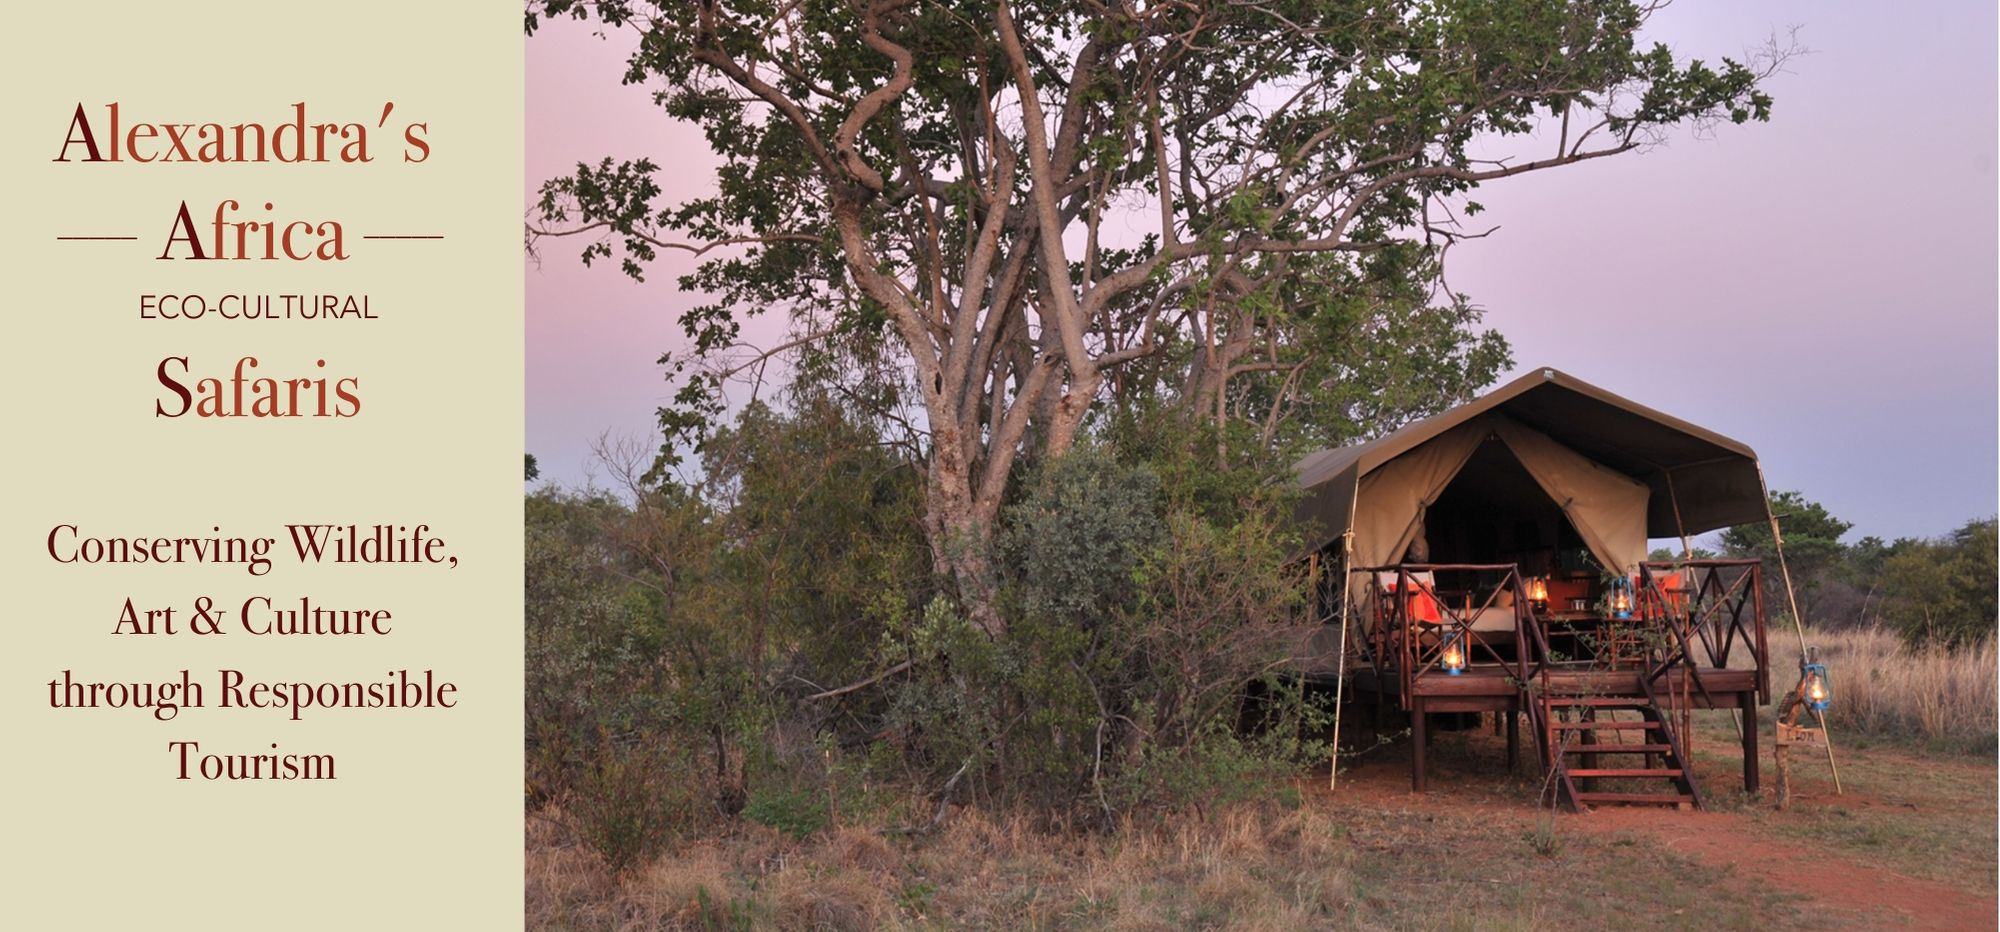 Alexandra's Africa Luxury Tented Accommodation - on our Classic Safari